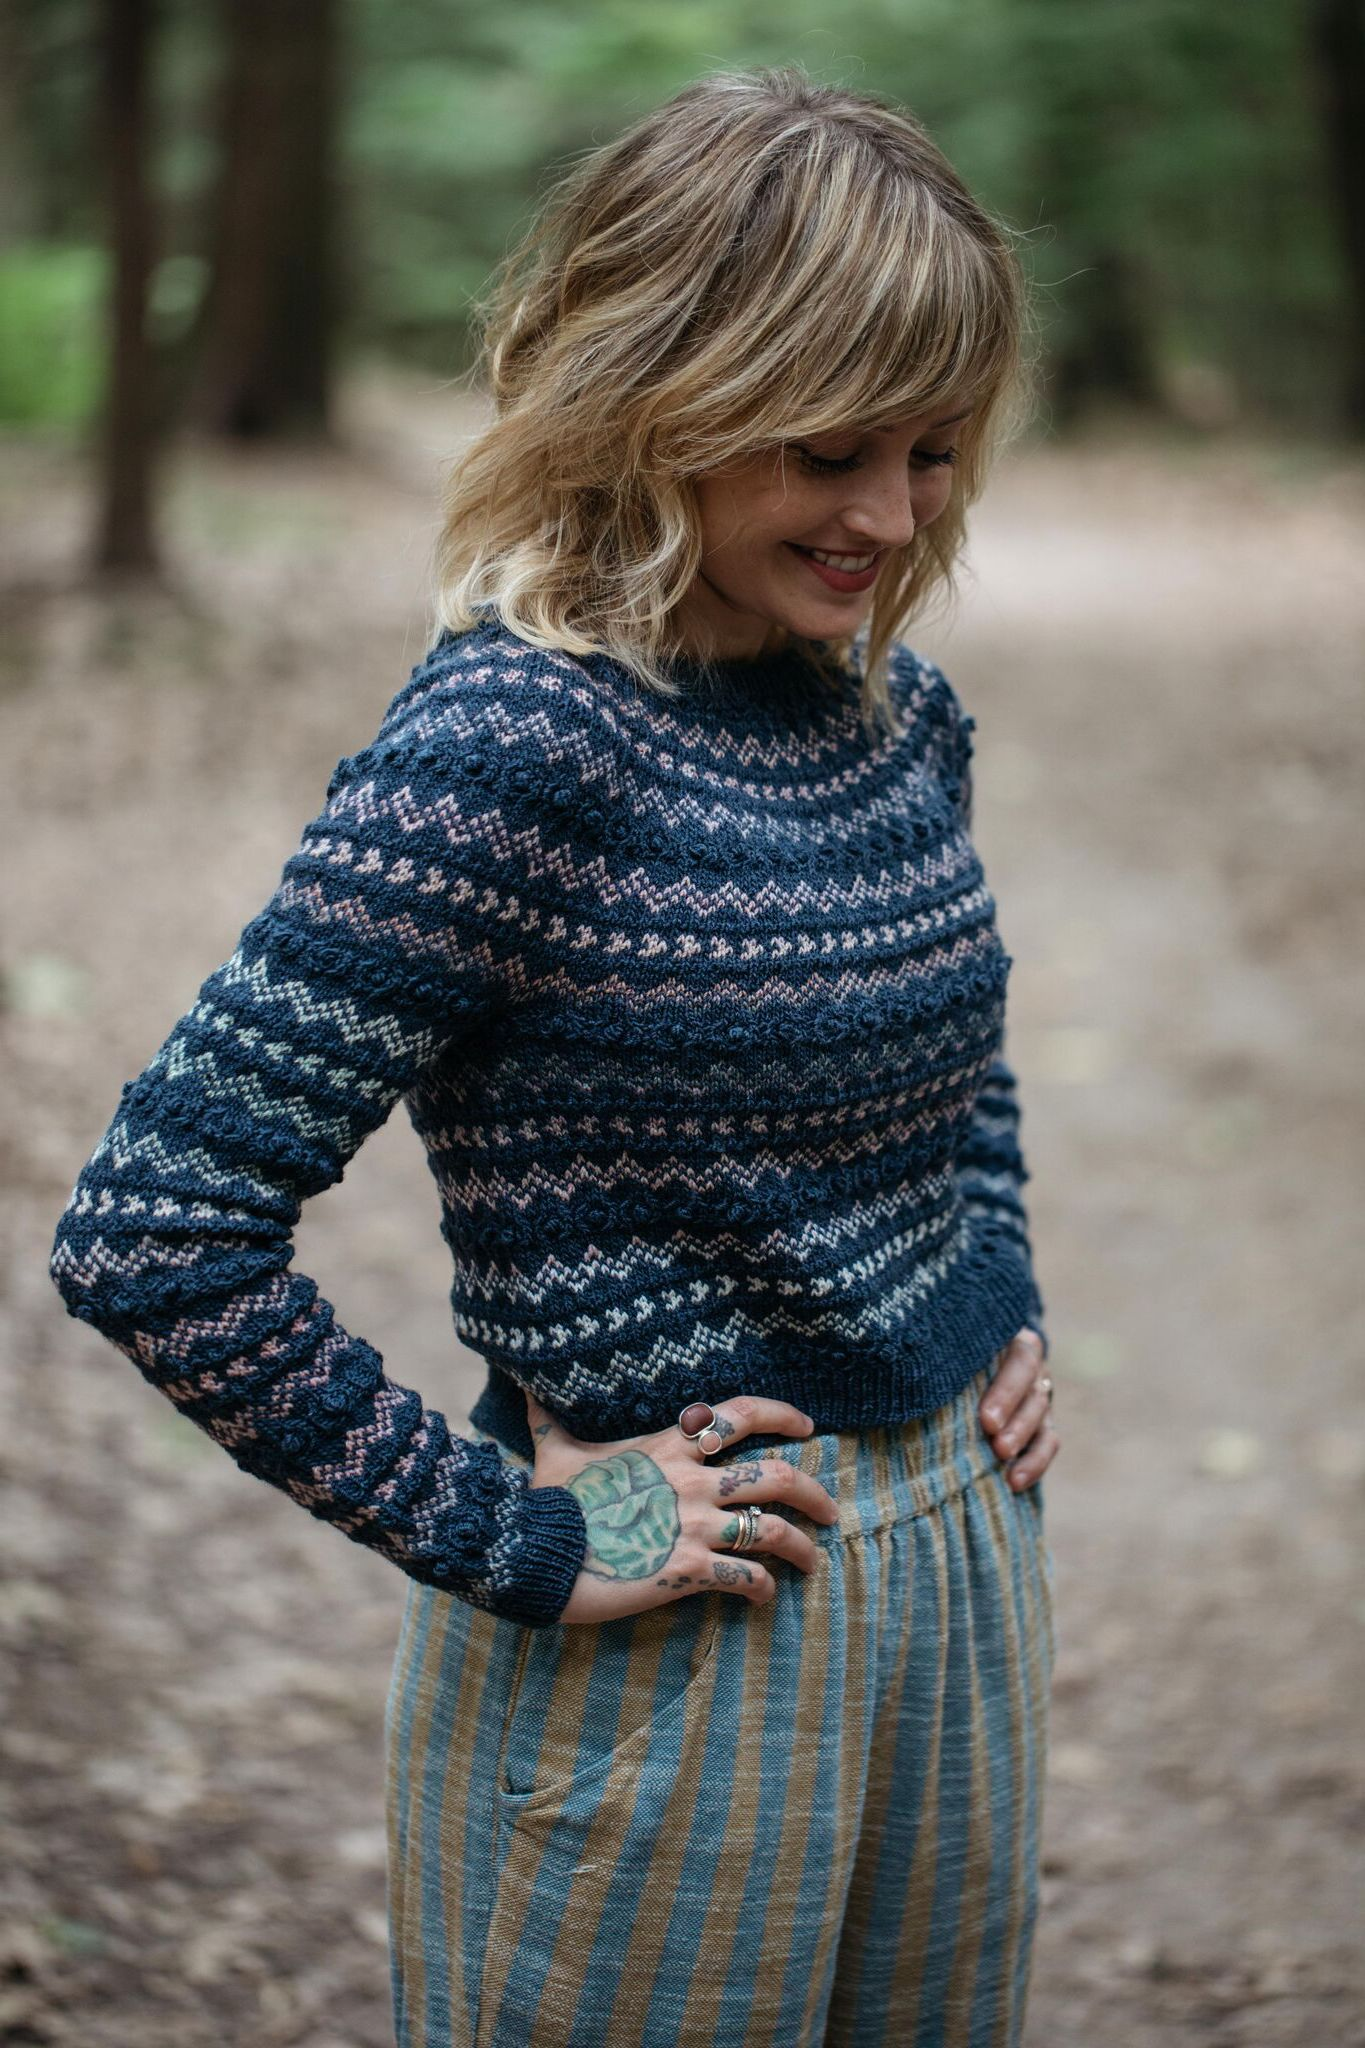 Pullover: MC - In the Navy (Magpie Fibers), CC - Cold Comfort (Spincycle Yarns)